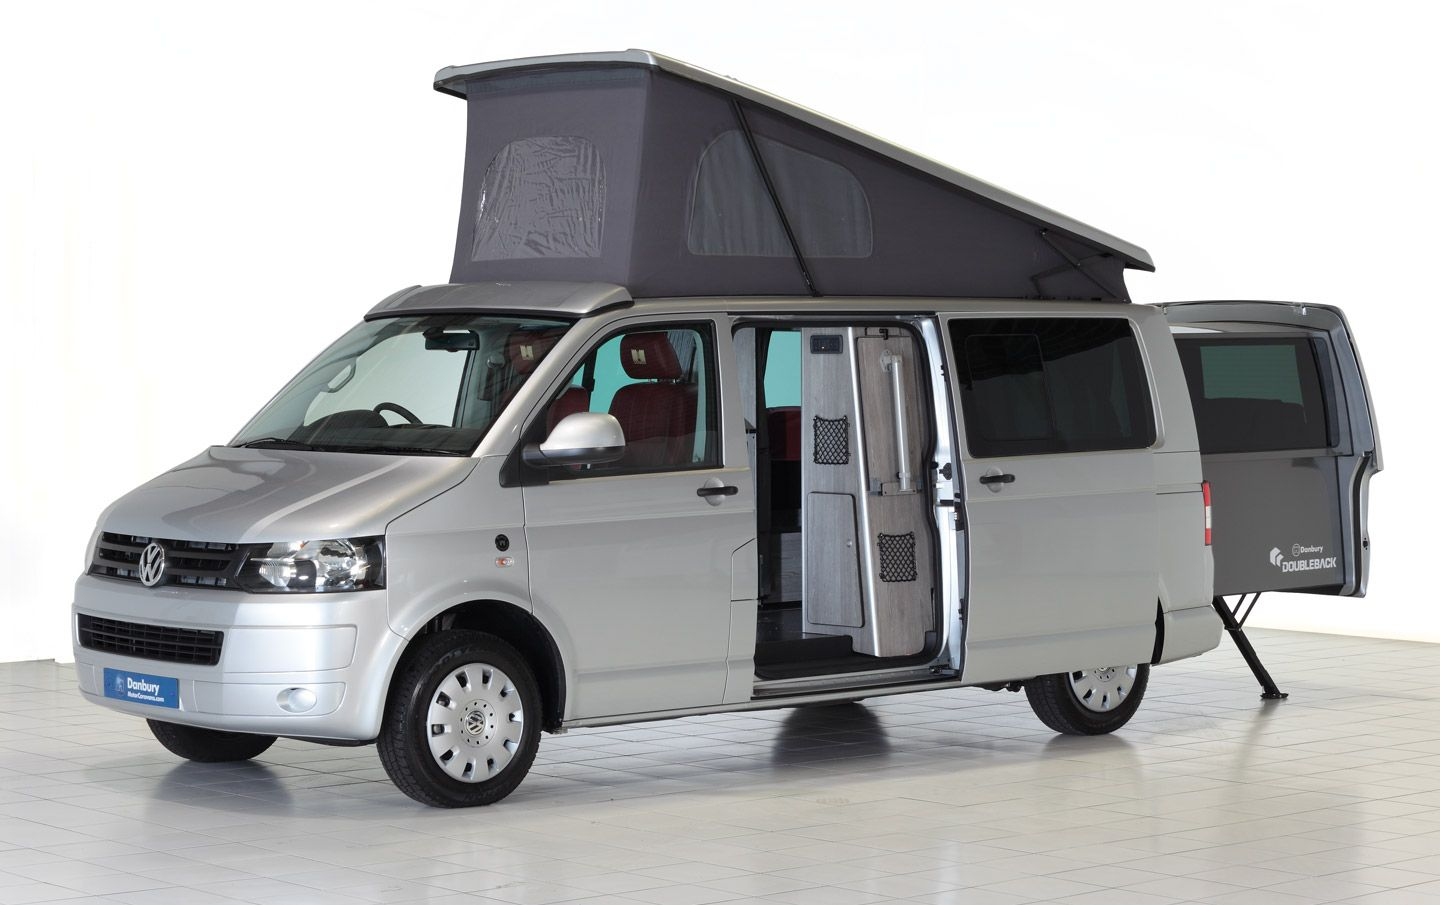 doubleback revolutionalry vw t5 campervan conversion from danbury motorcaravans interesting. Black Bedroom Furniture Sets. Home Design Ideas